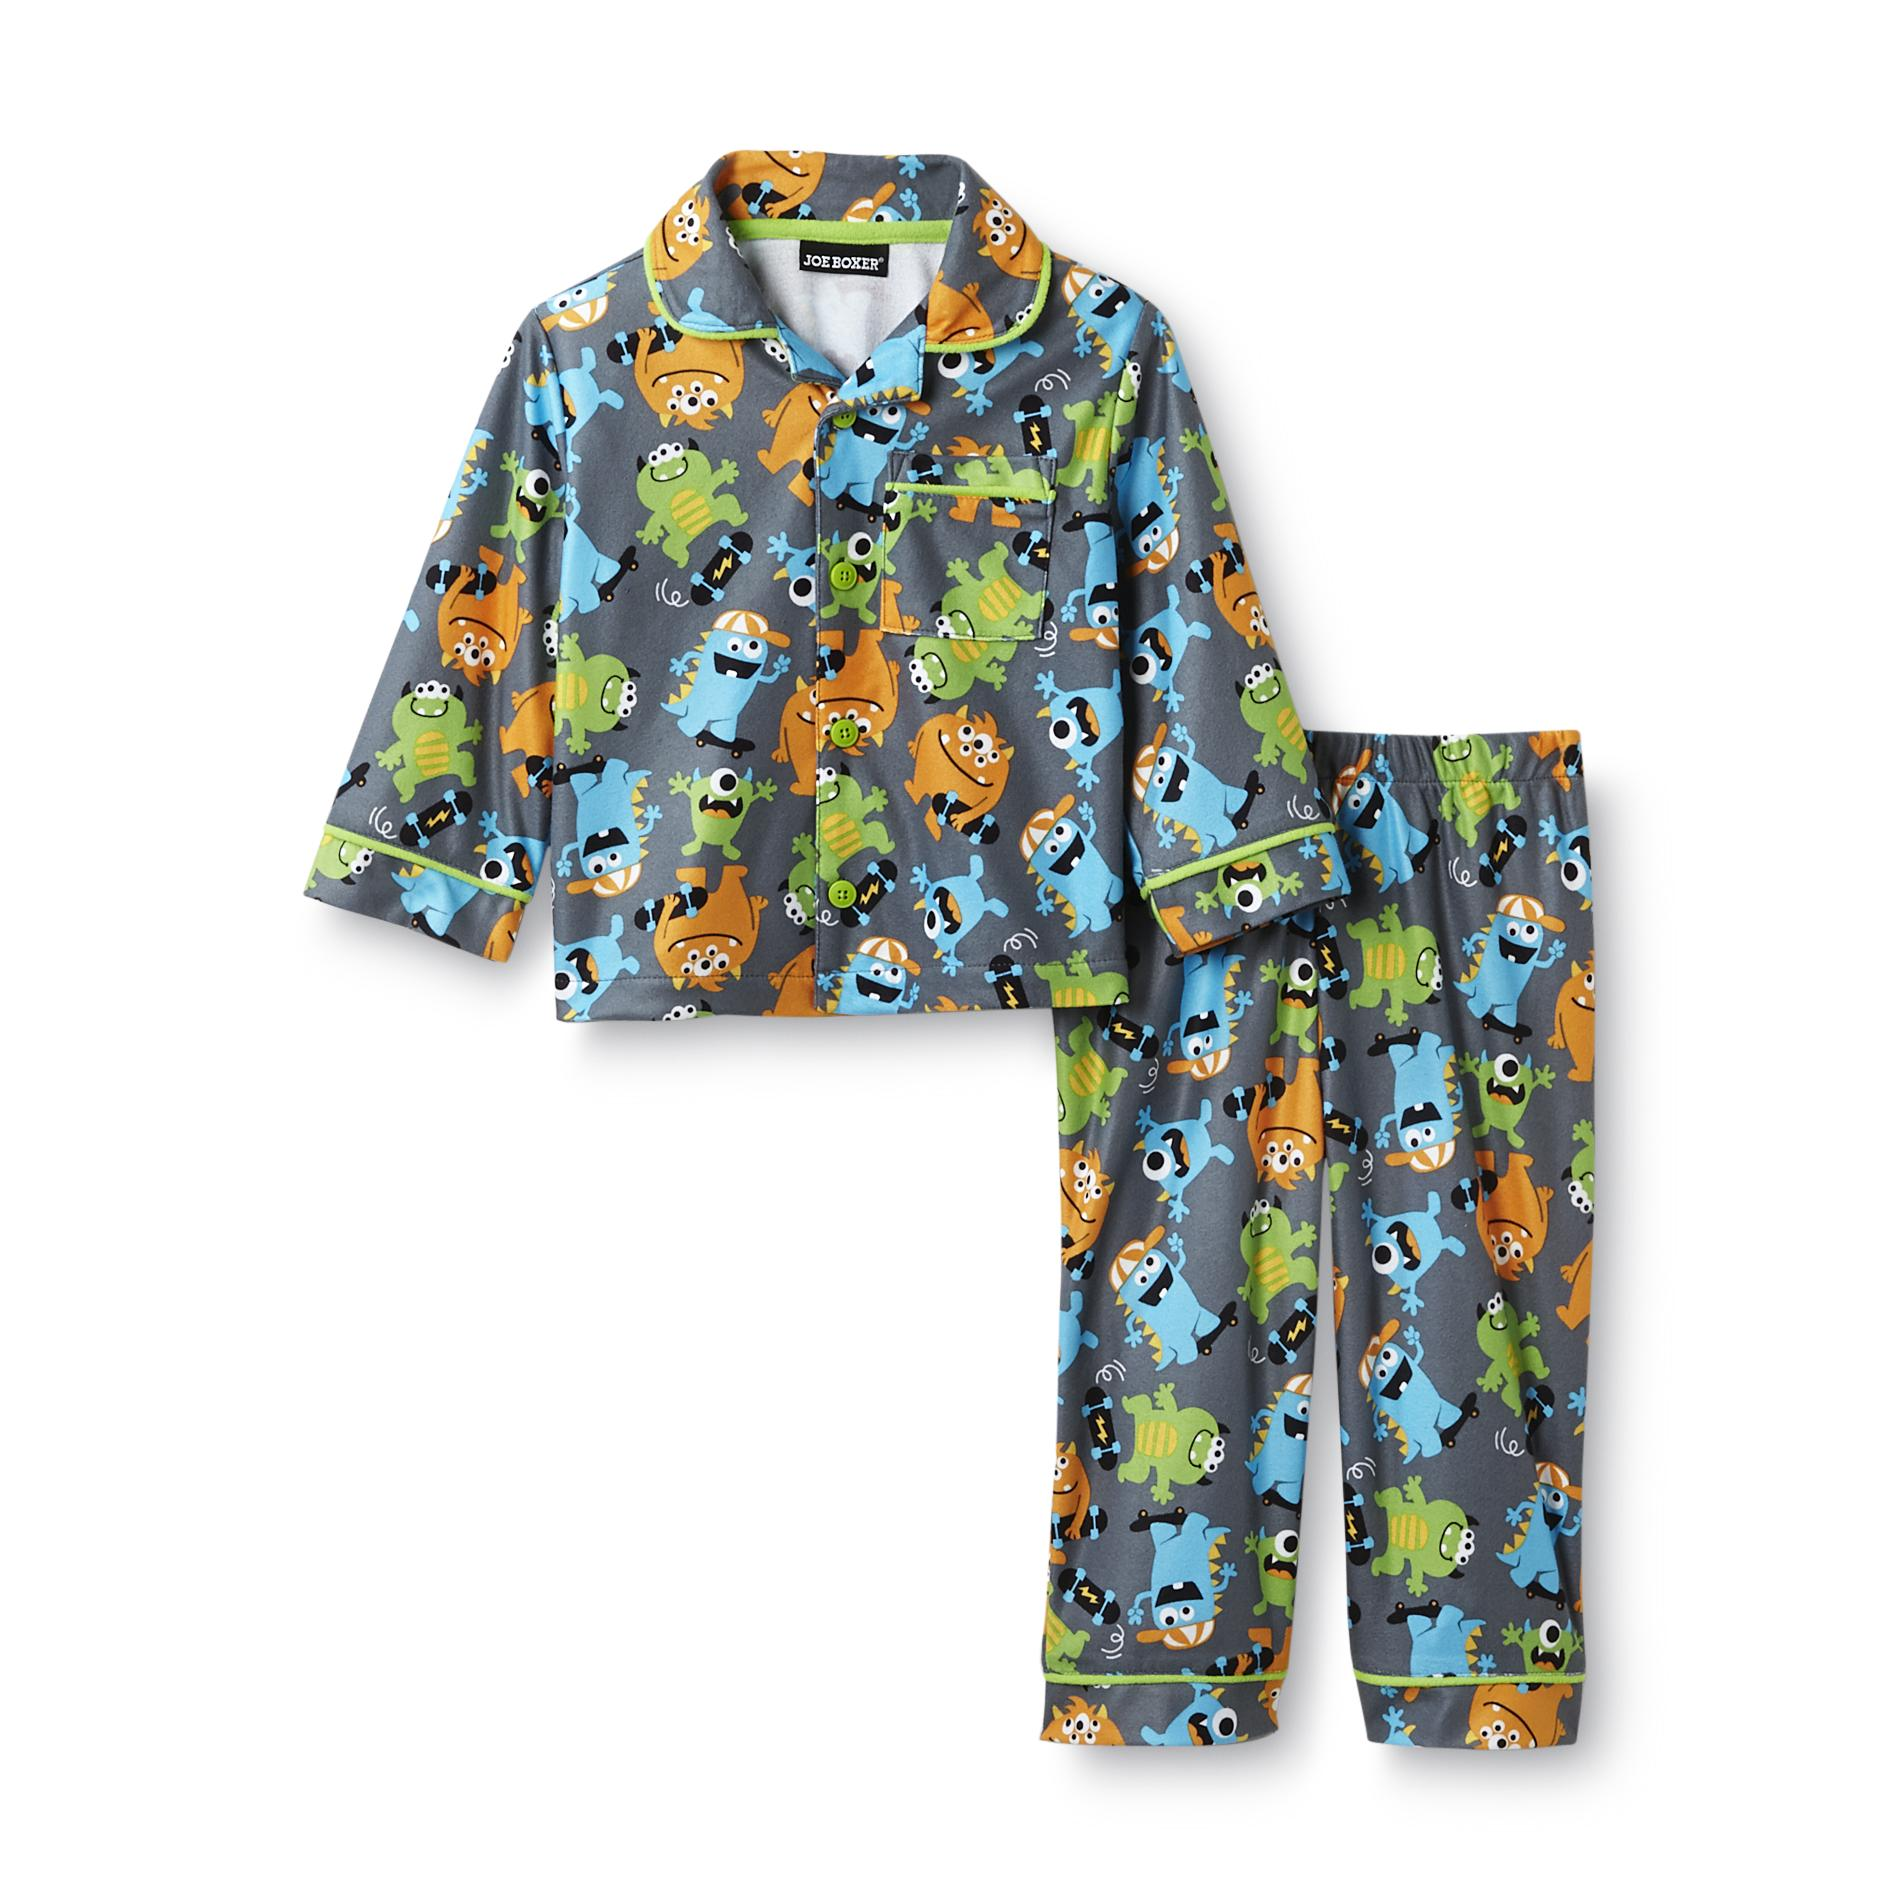 Infant & Toddler Boy's Flannel Pajamas - Monsters